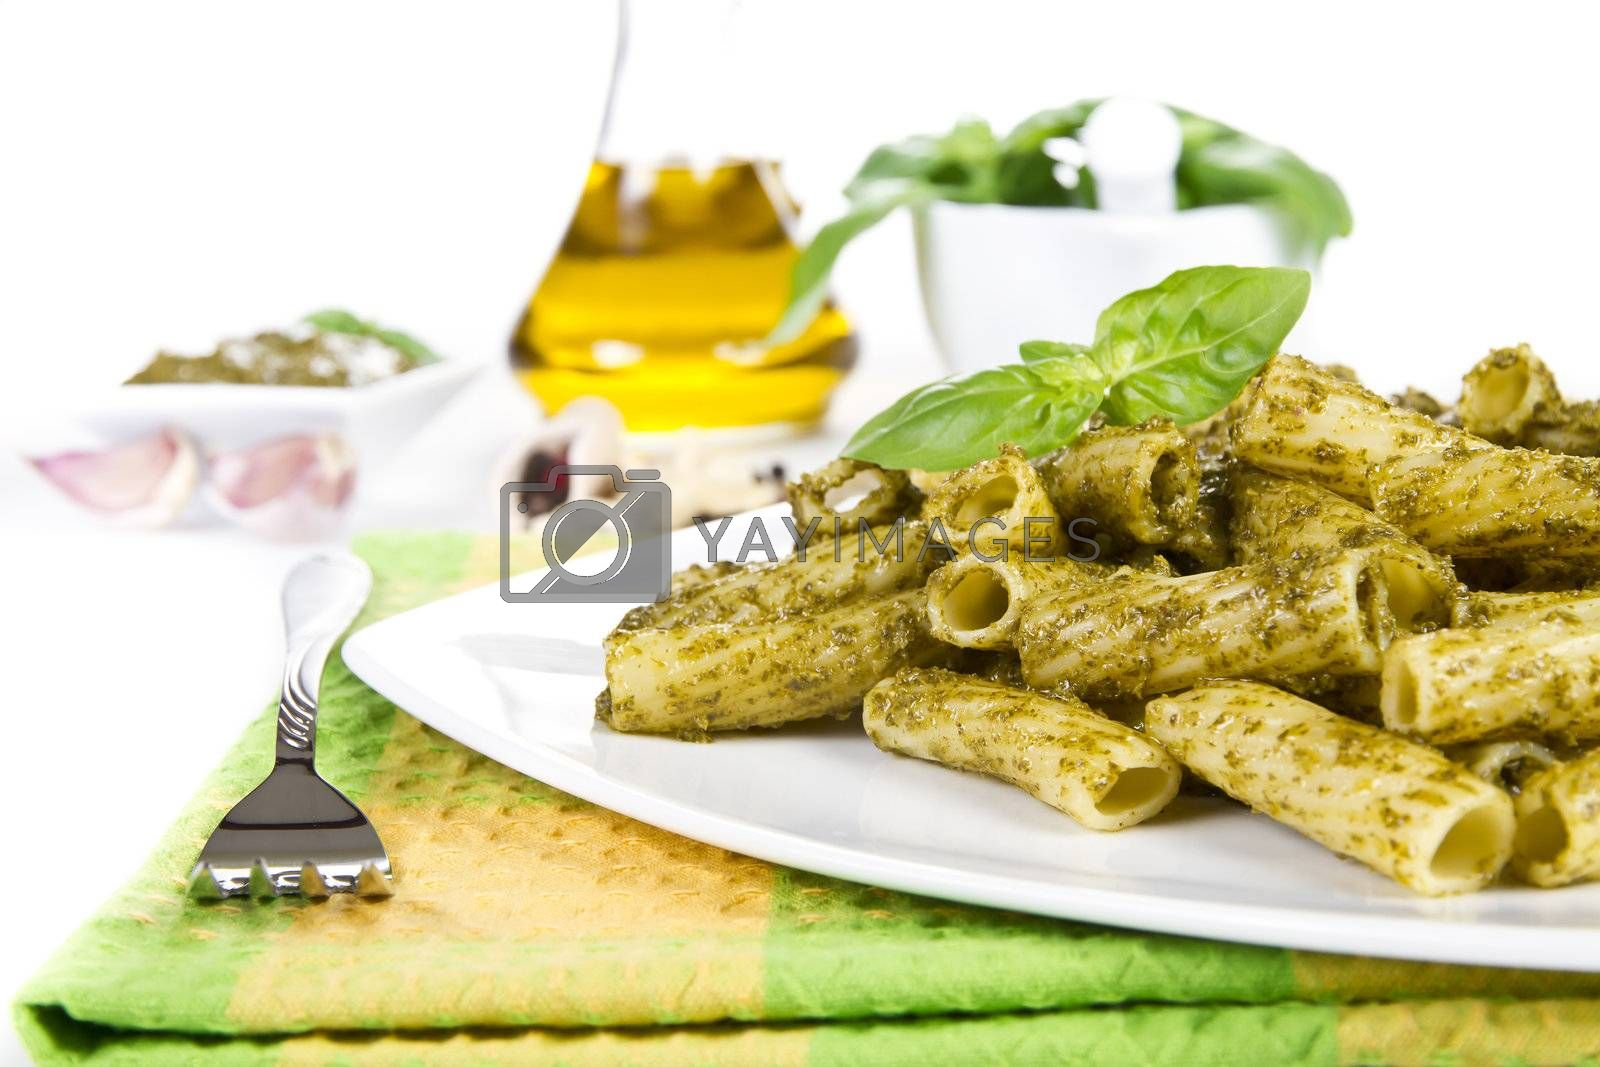 Pasta with pesto sauce and ingredients over white